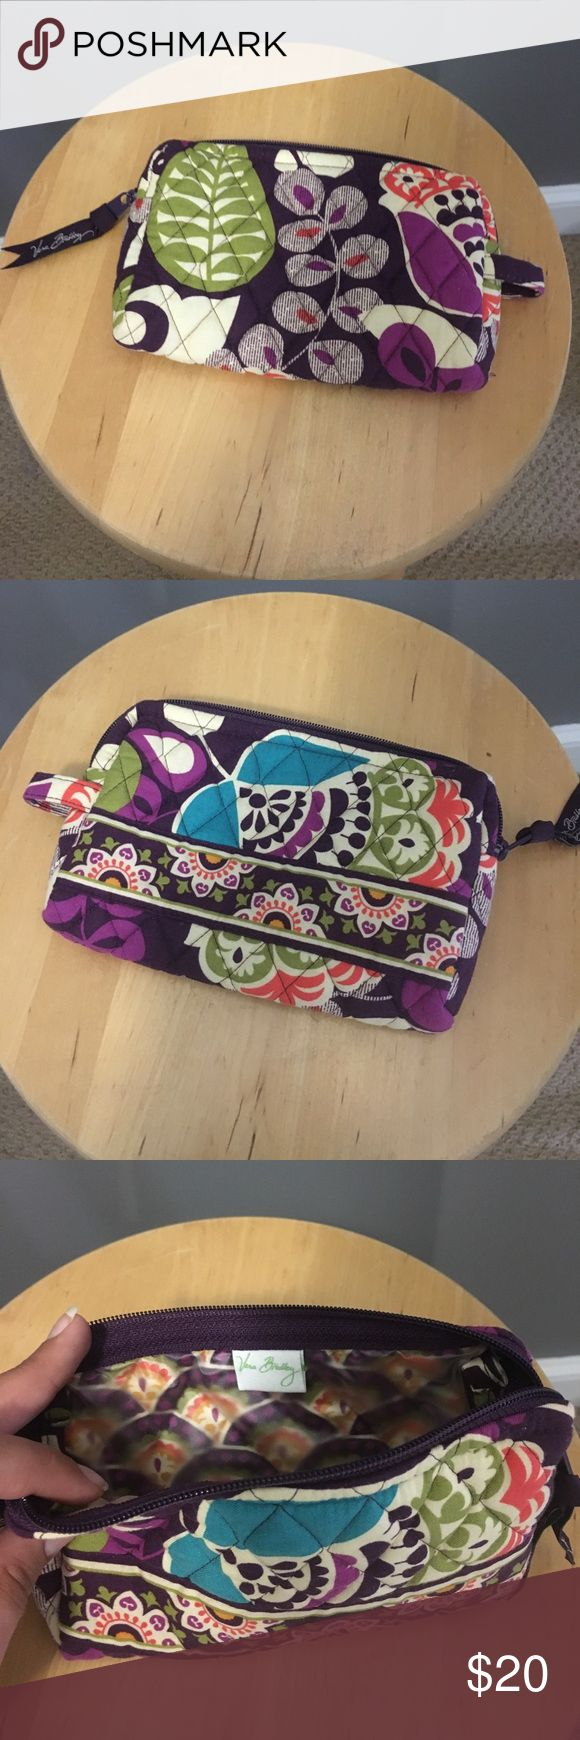 """Vera Bradley Small Cosmetic Bag Never used, in excellent condition! """"Plum Crazy"""" retired pattern. Smoke free, pet free home. Vera Bradley Bags Travel Bags"""